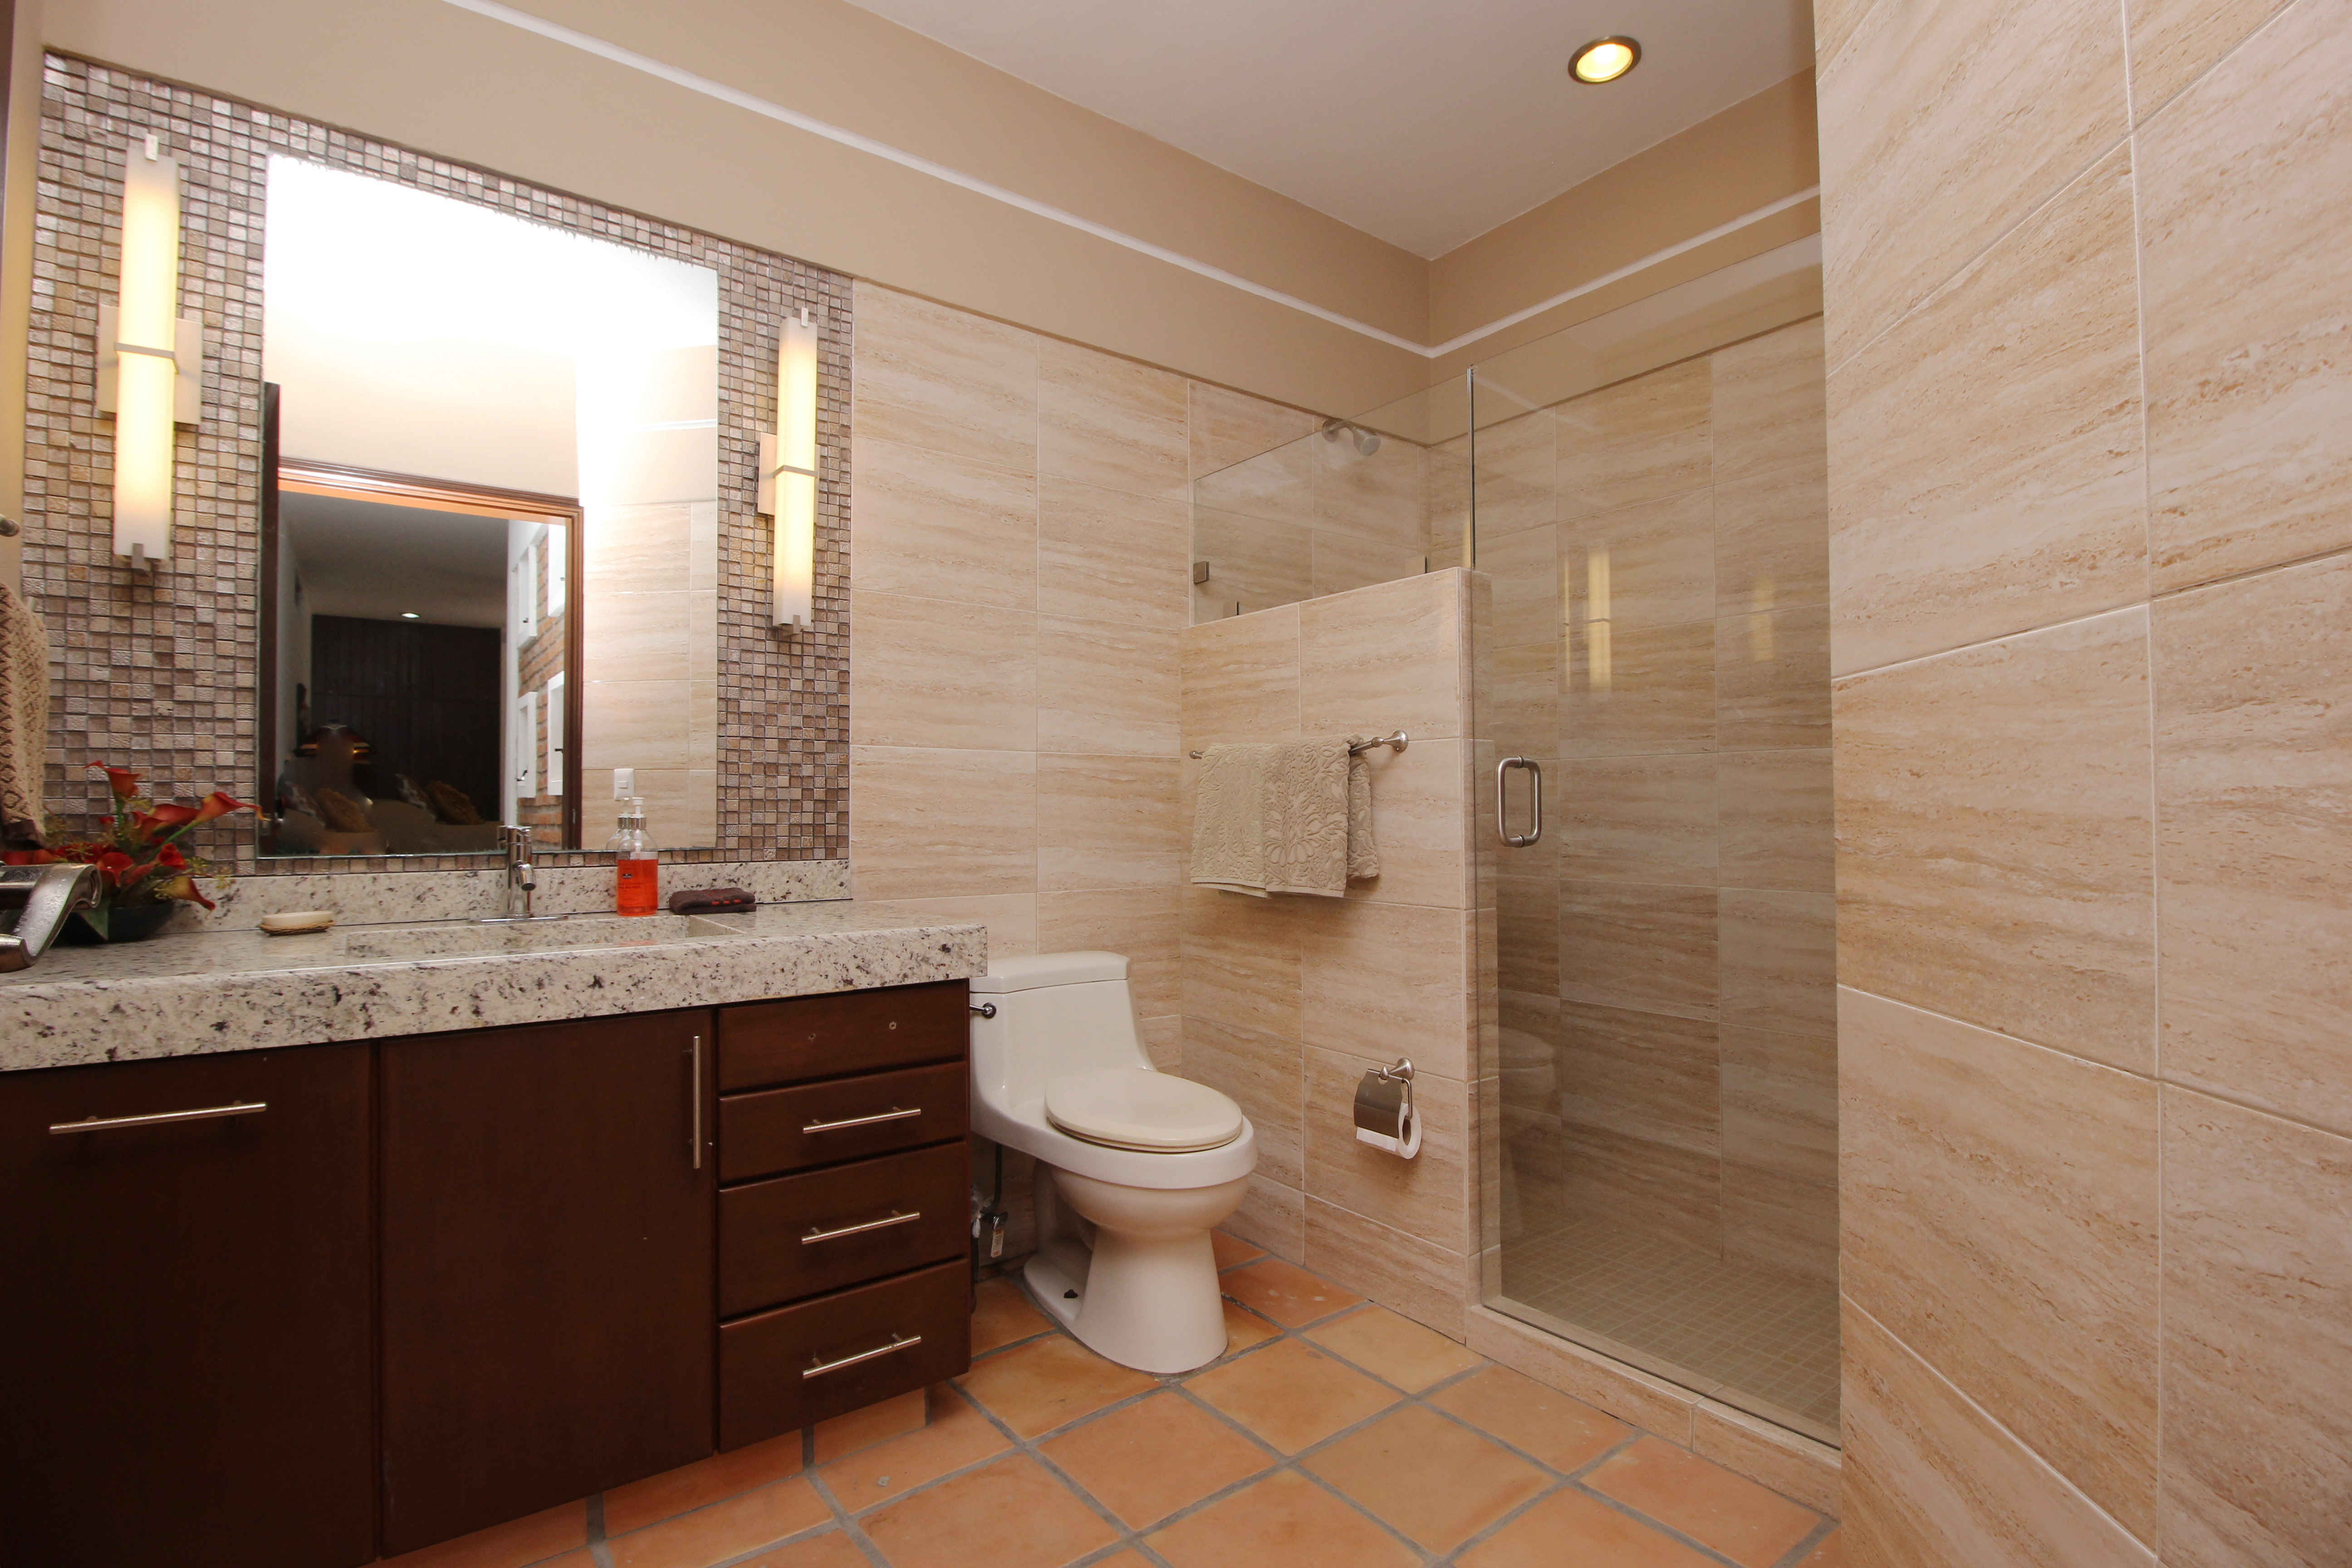 Ensuite with shower.